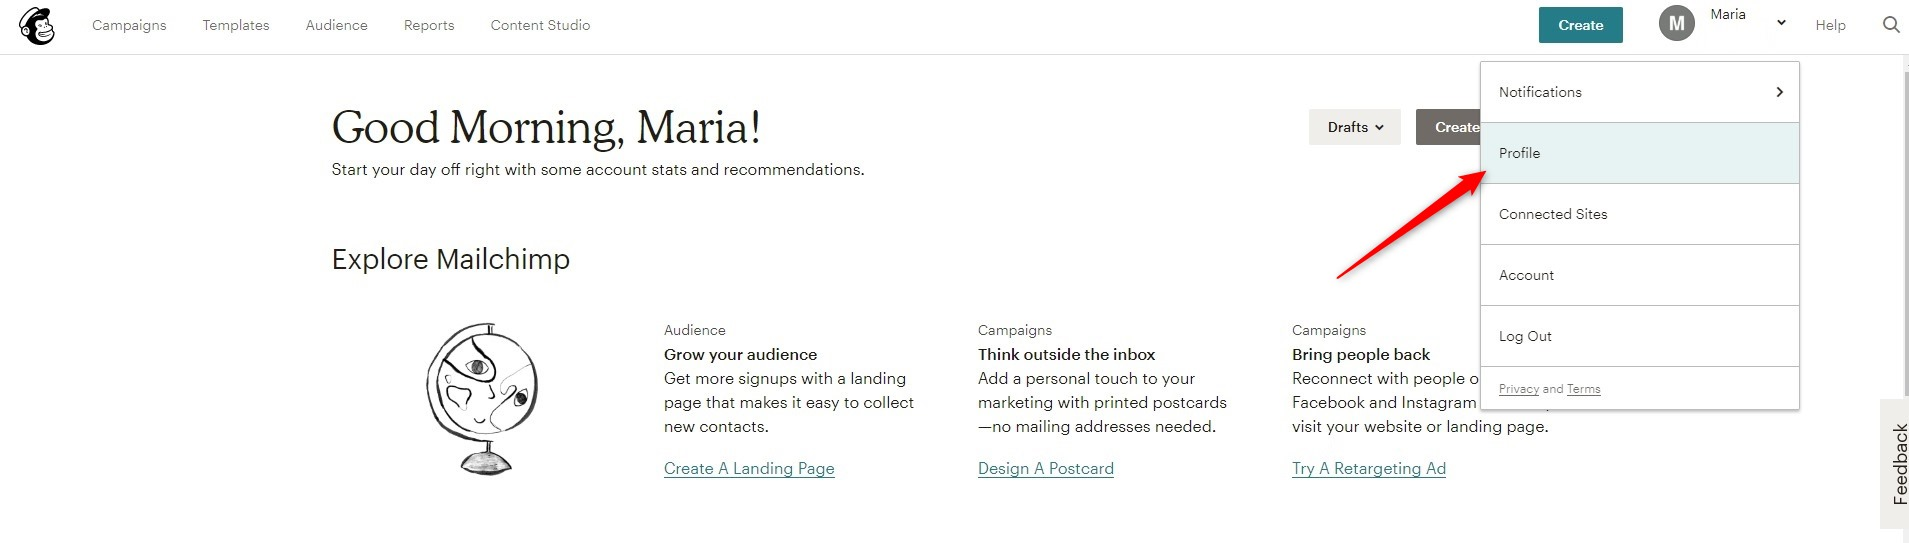 Edit your Mailchimp Profile